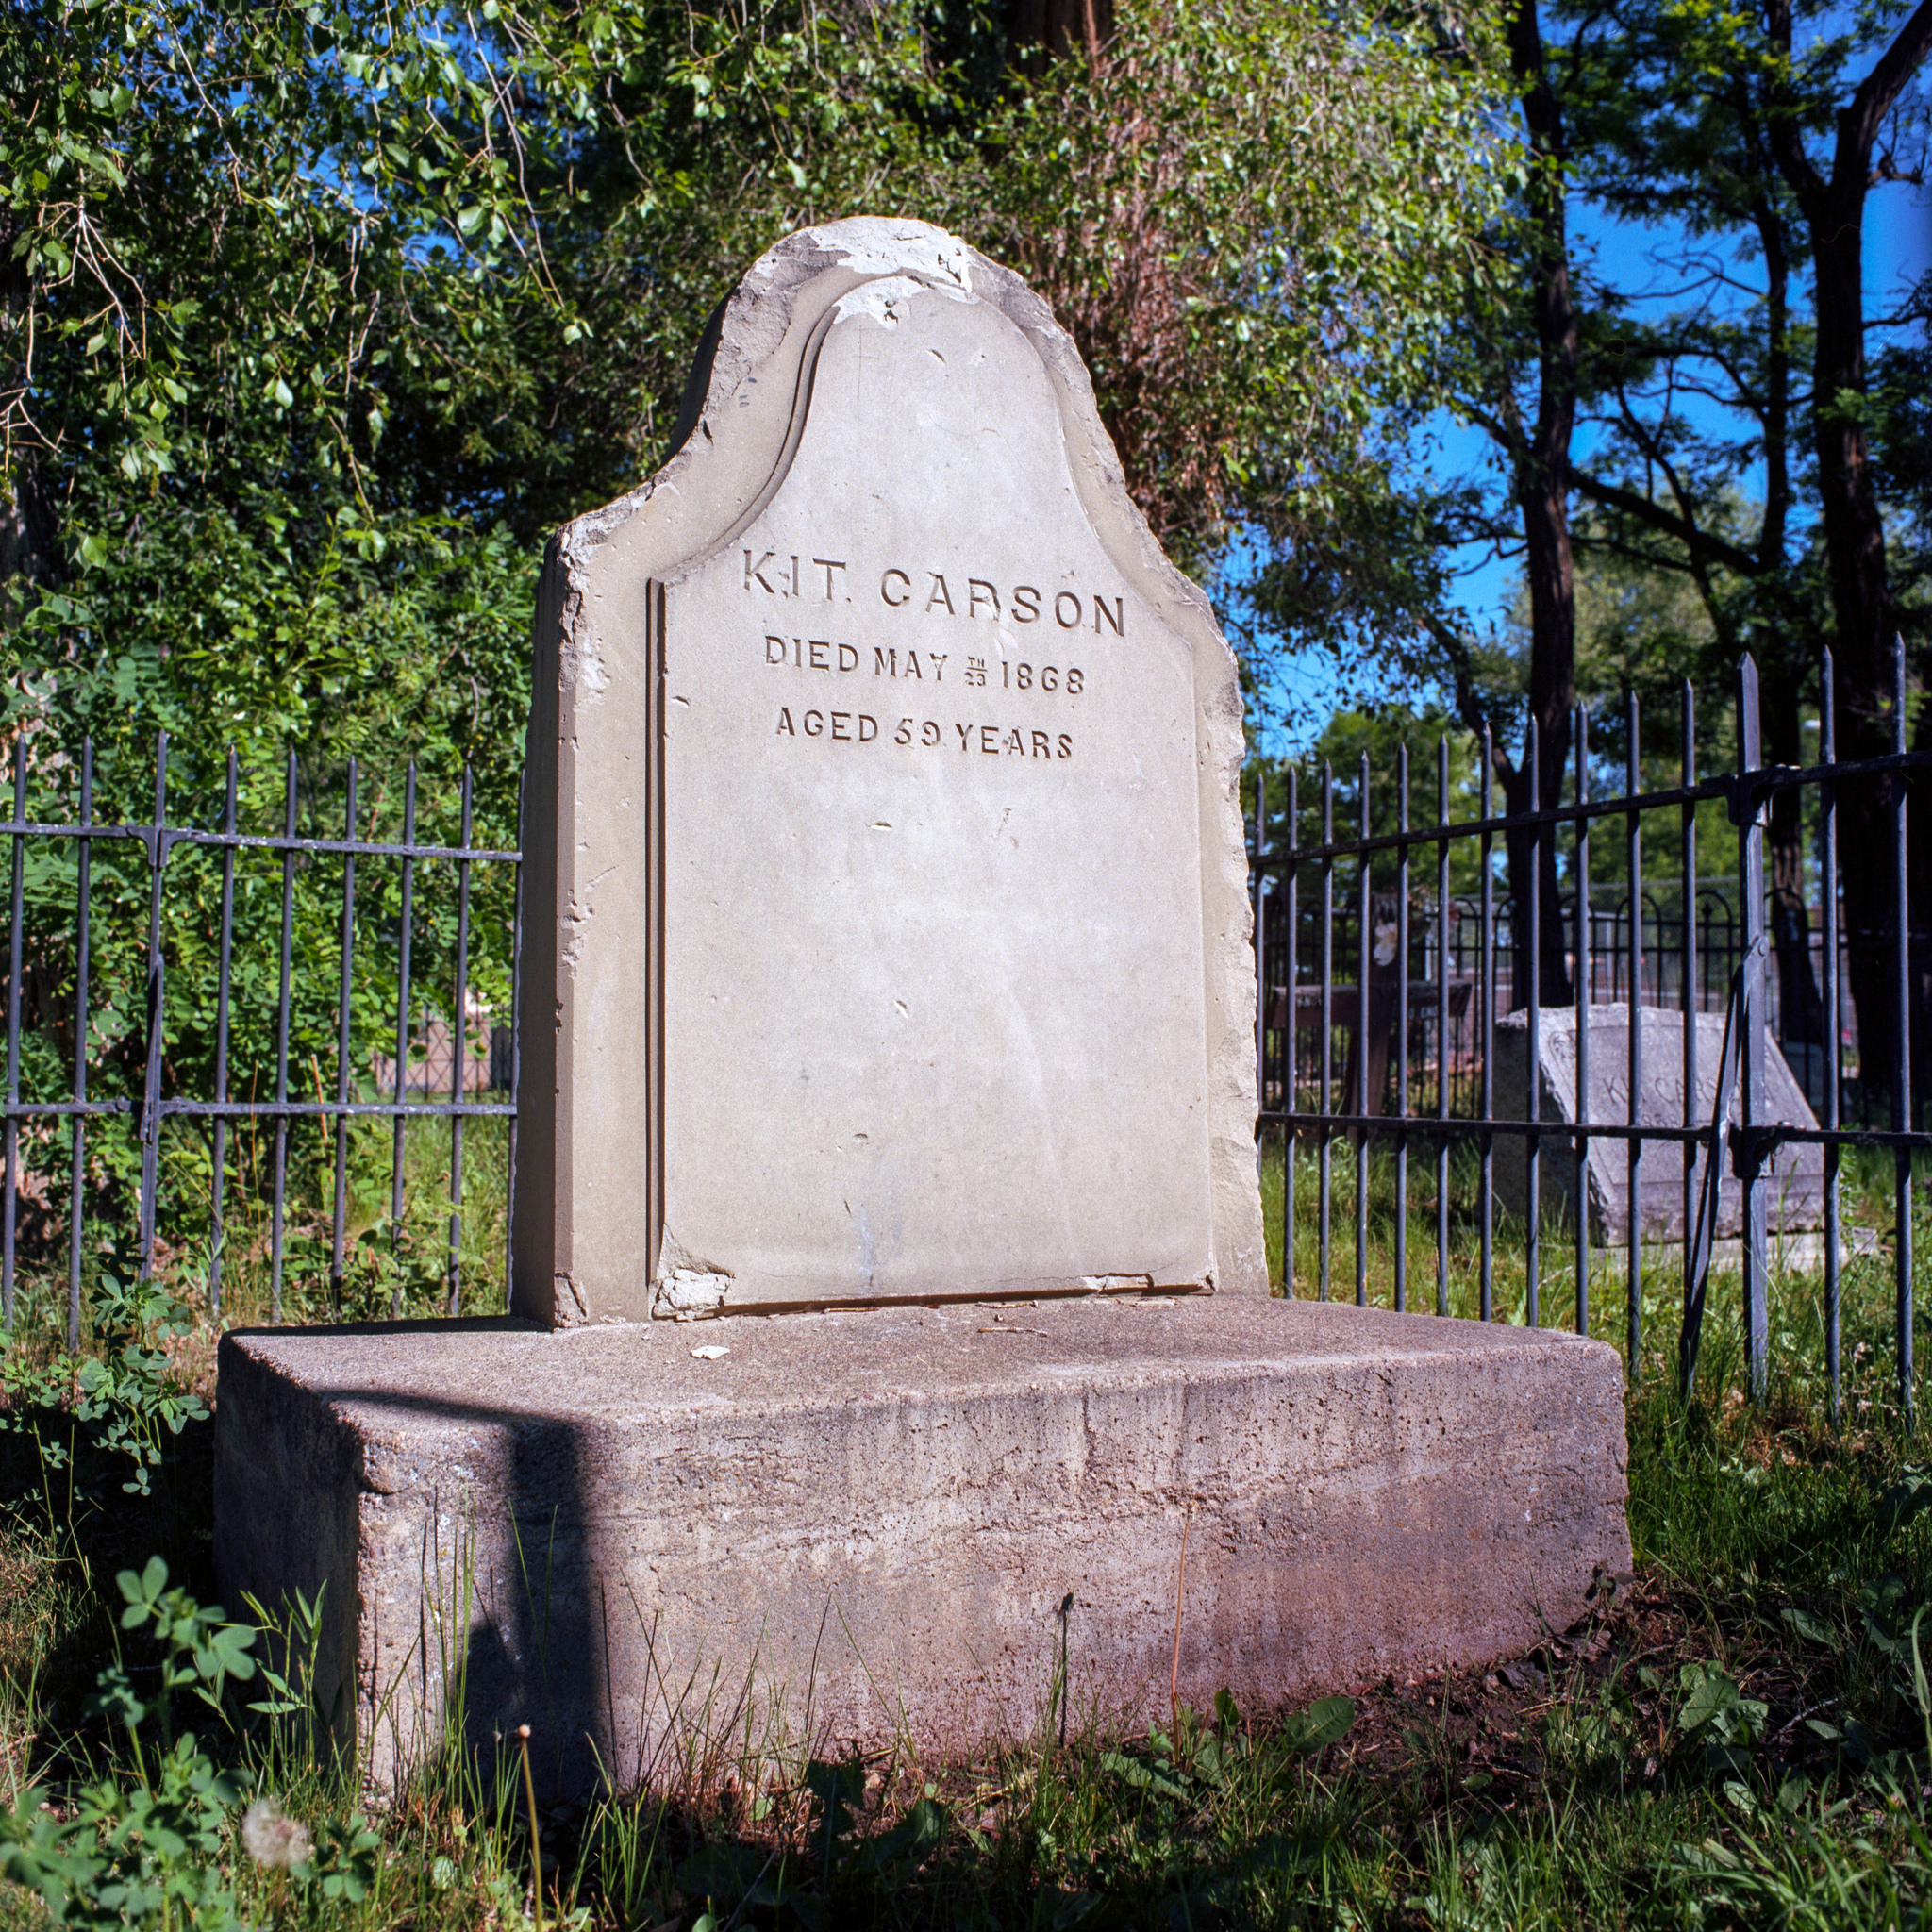 Frontier legend Kit Carson's grave. (December 24, 1809 – May 23, 1868)